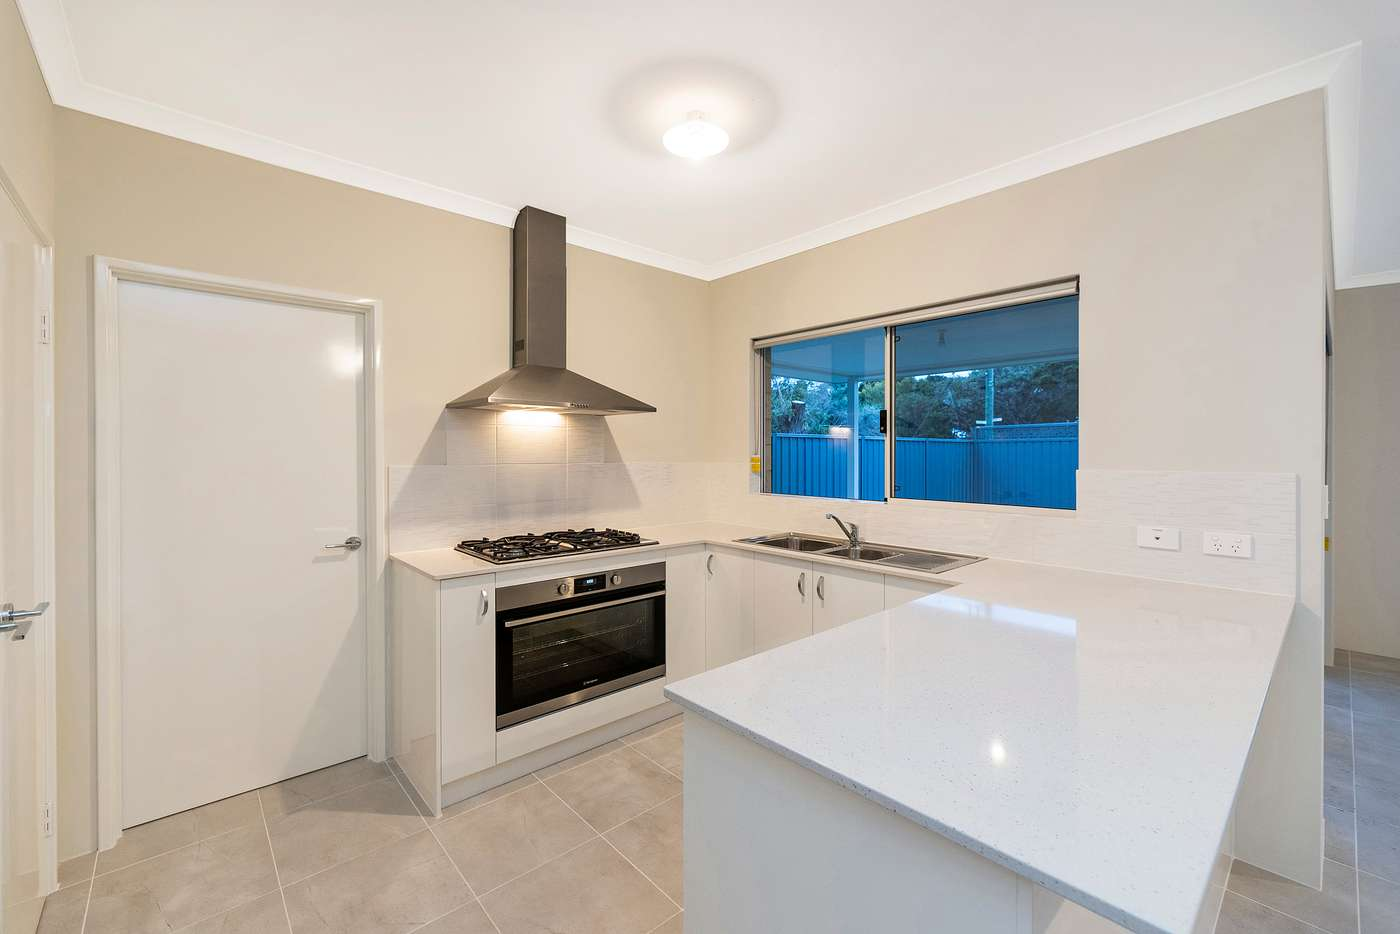 Sixth view of Homely house listing, 64 Mistral Street, Falcon WA 6210